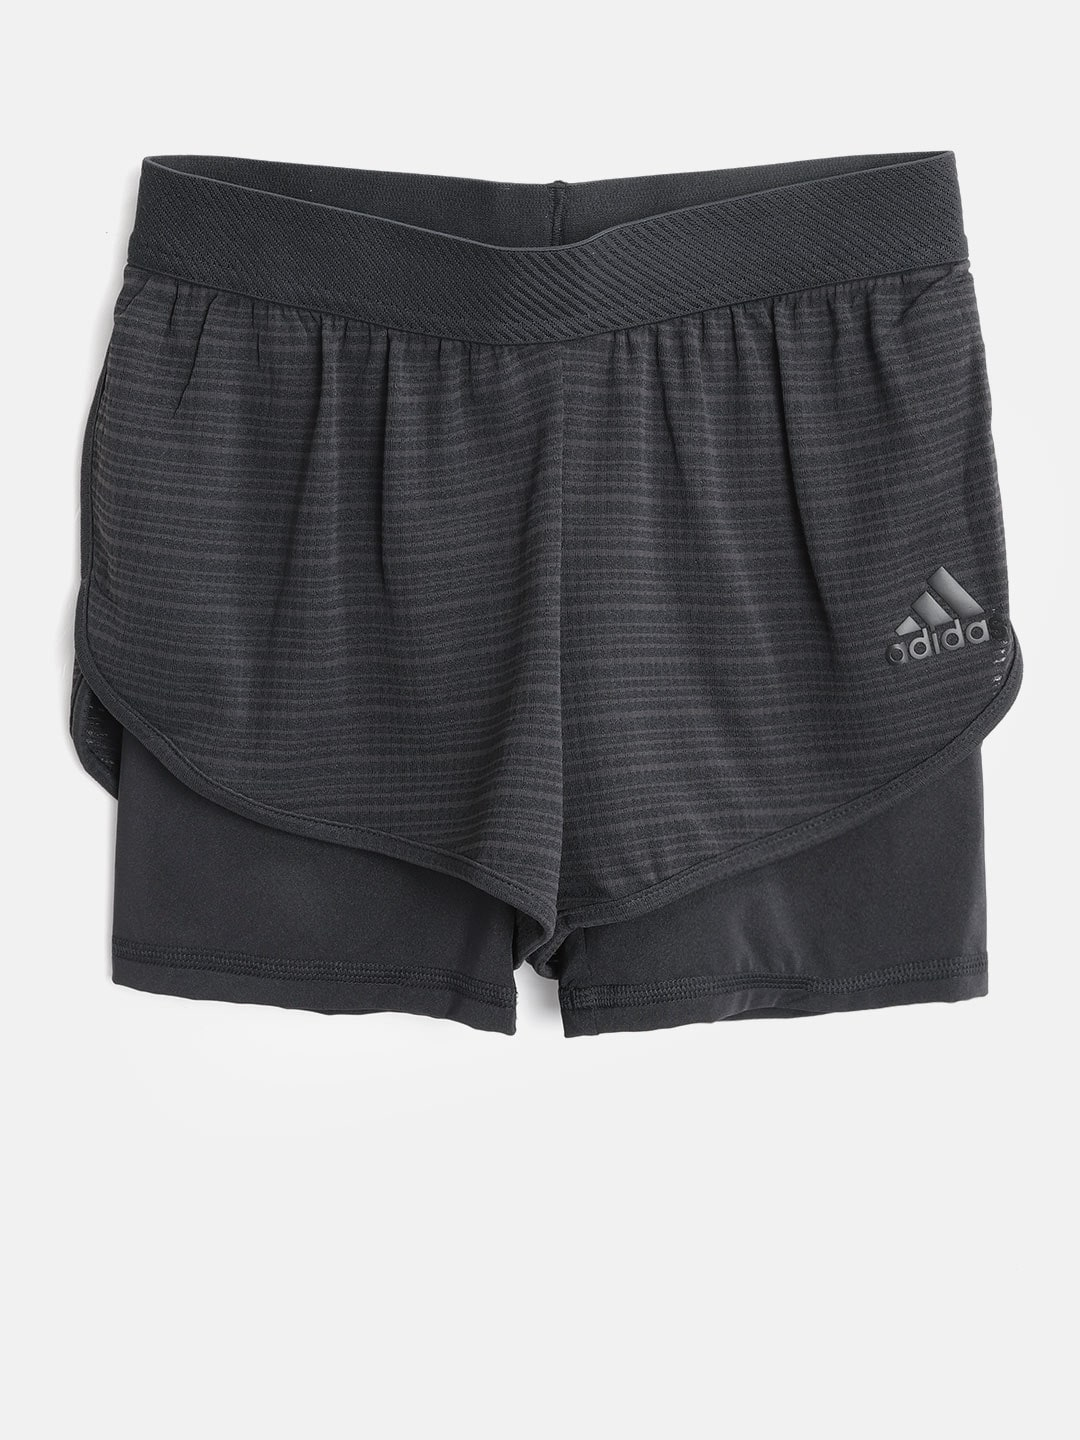 b919f9909 Buy ADIDAS Girls Black YG Run Perforated Sports Shorts - Shorts for ...